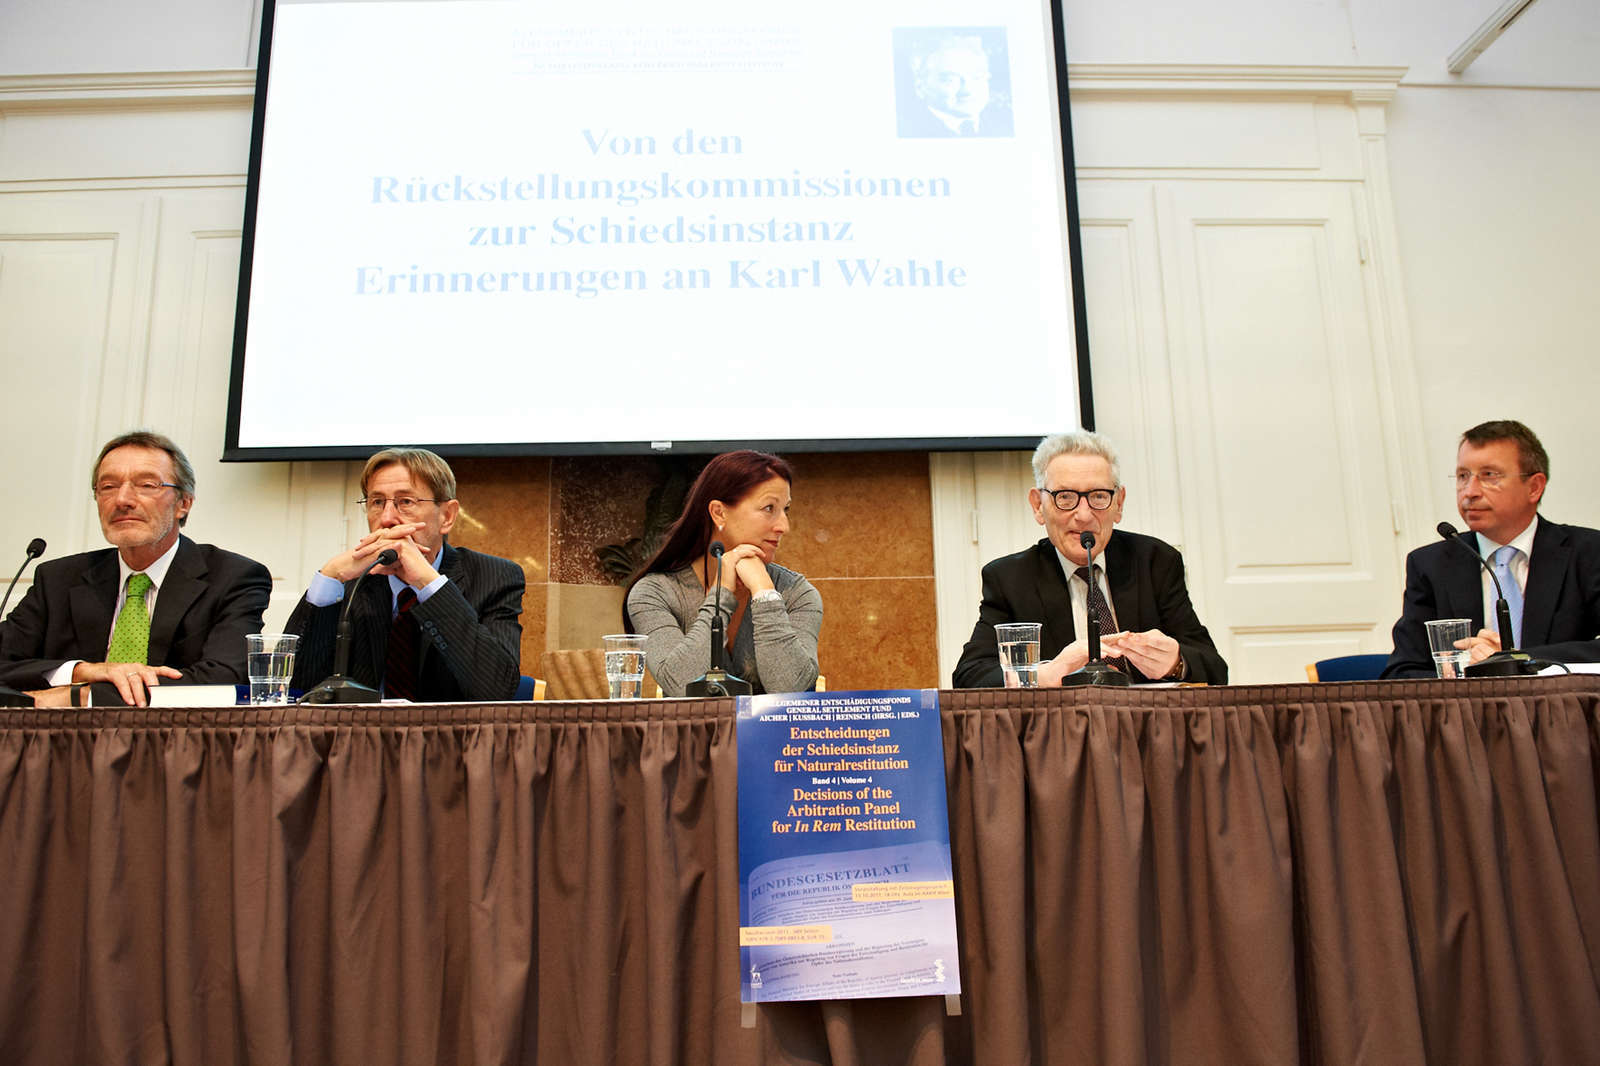 From the Restitution Commissions to the Arbitration Panel - Recollecting Karl Wahle